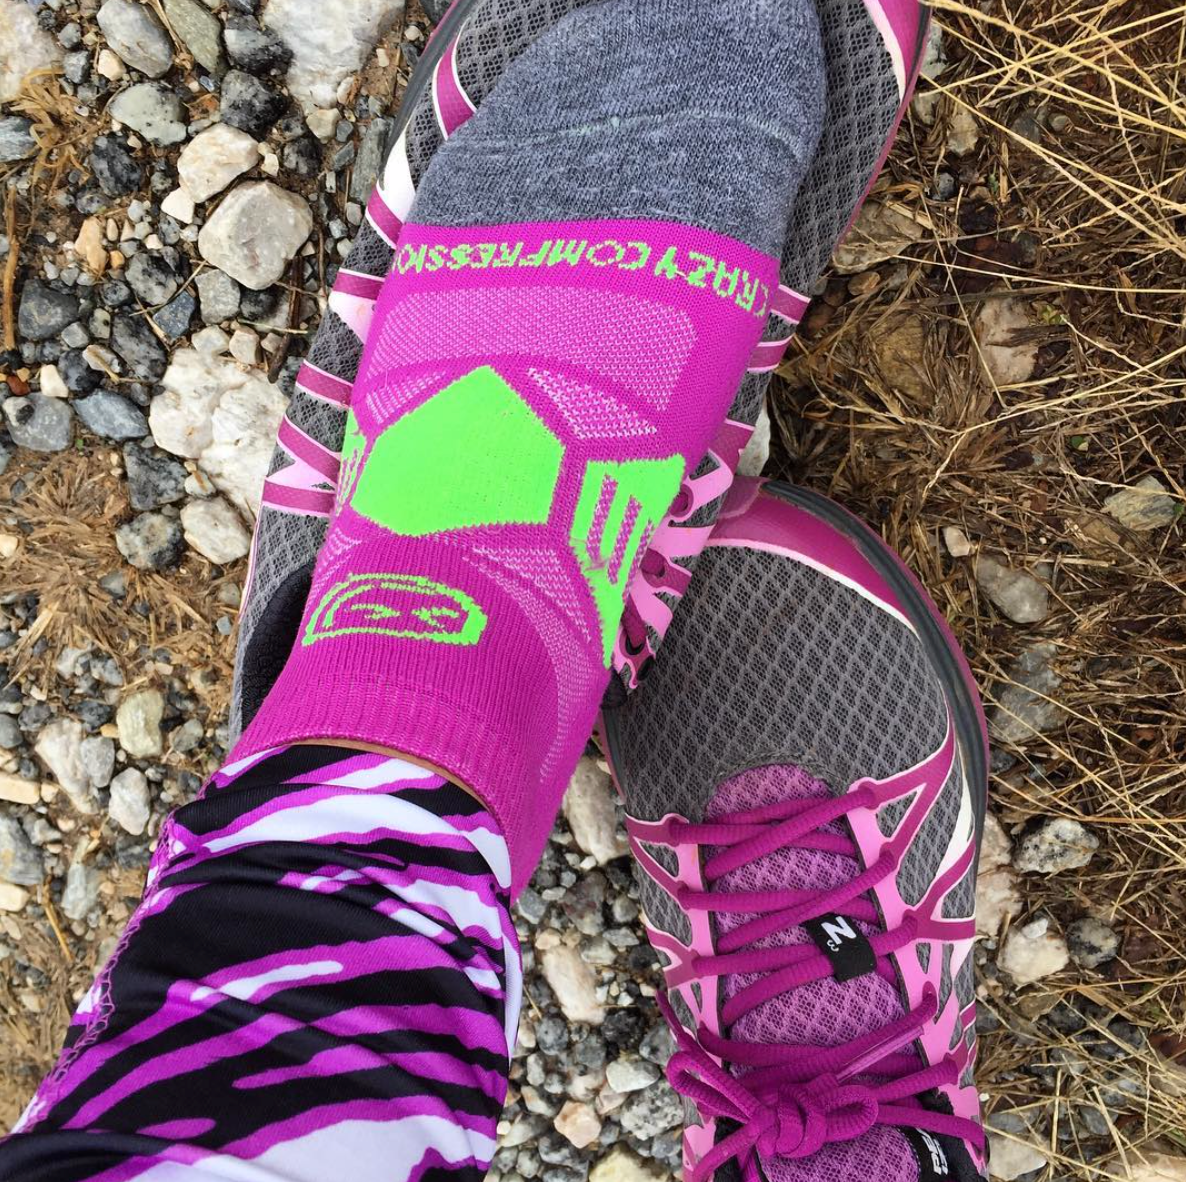 Berry & Lime Runners - Elite Running Socks - CrazyCompression.com